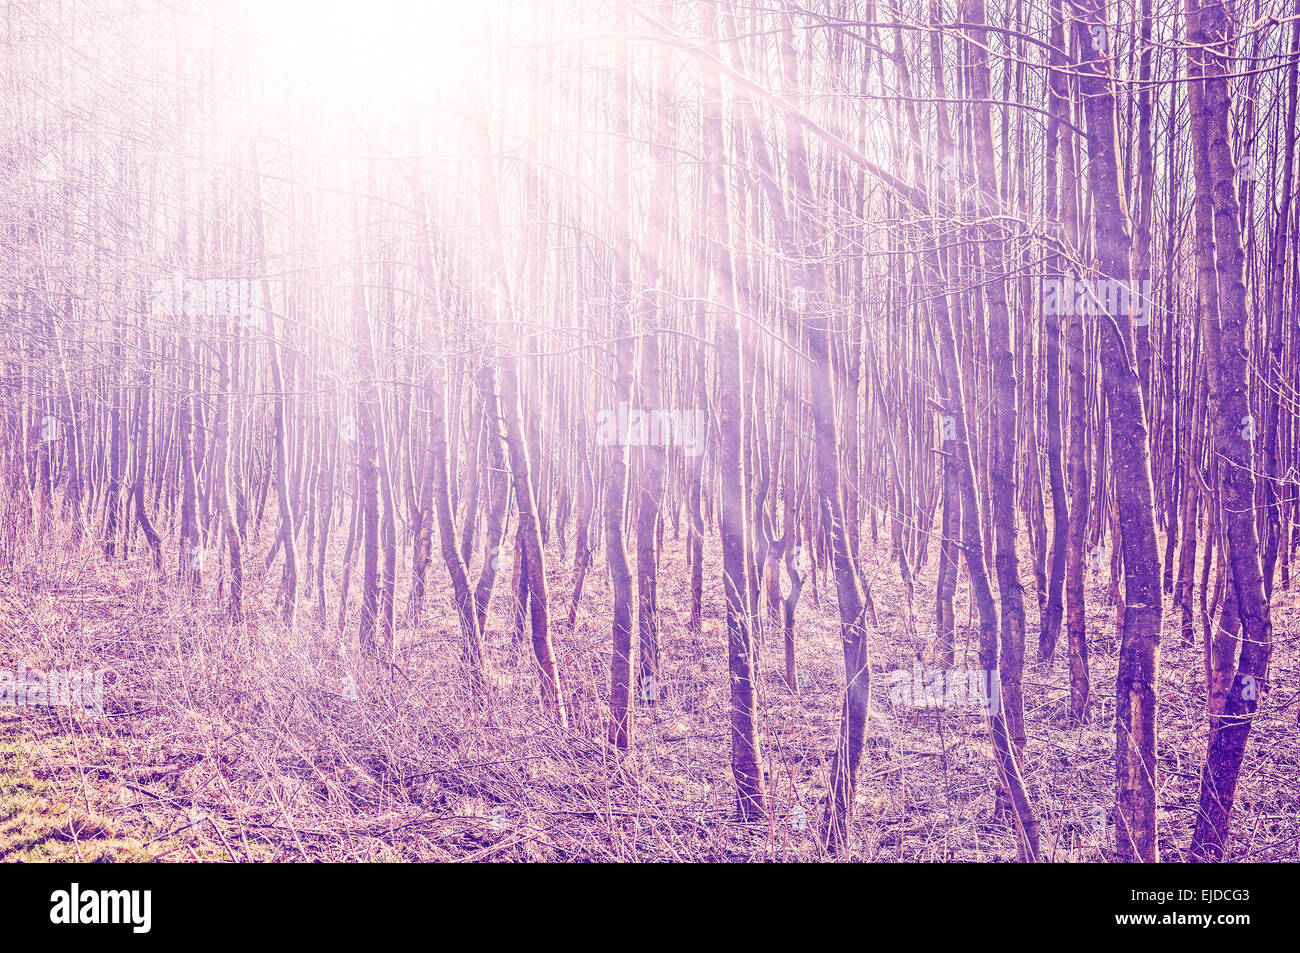 Vintage filtered photo of trees with sun beams. - Stock Image